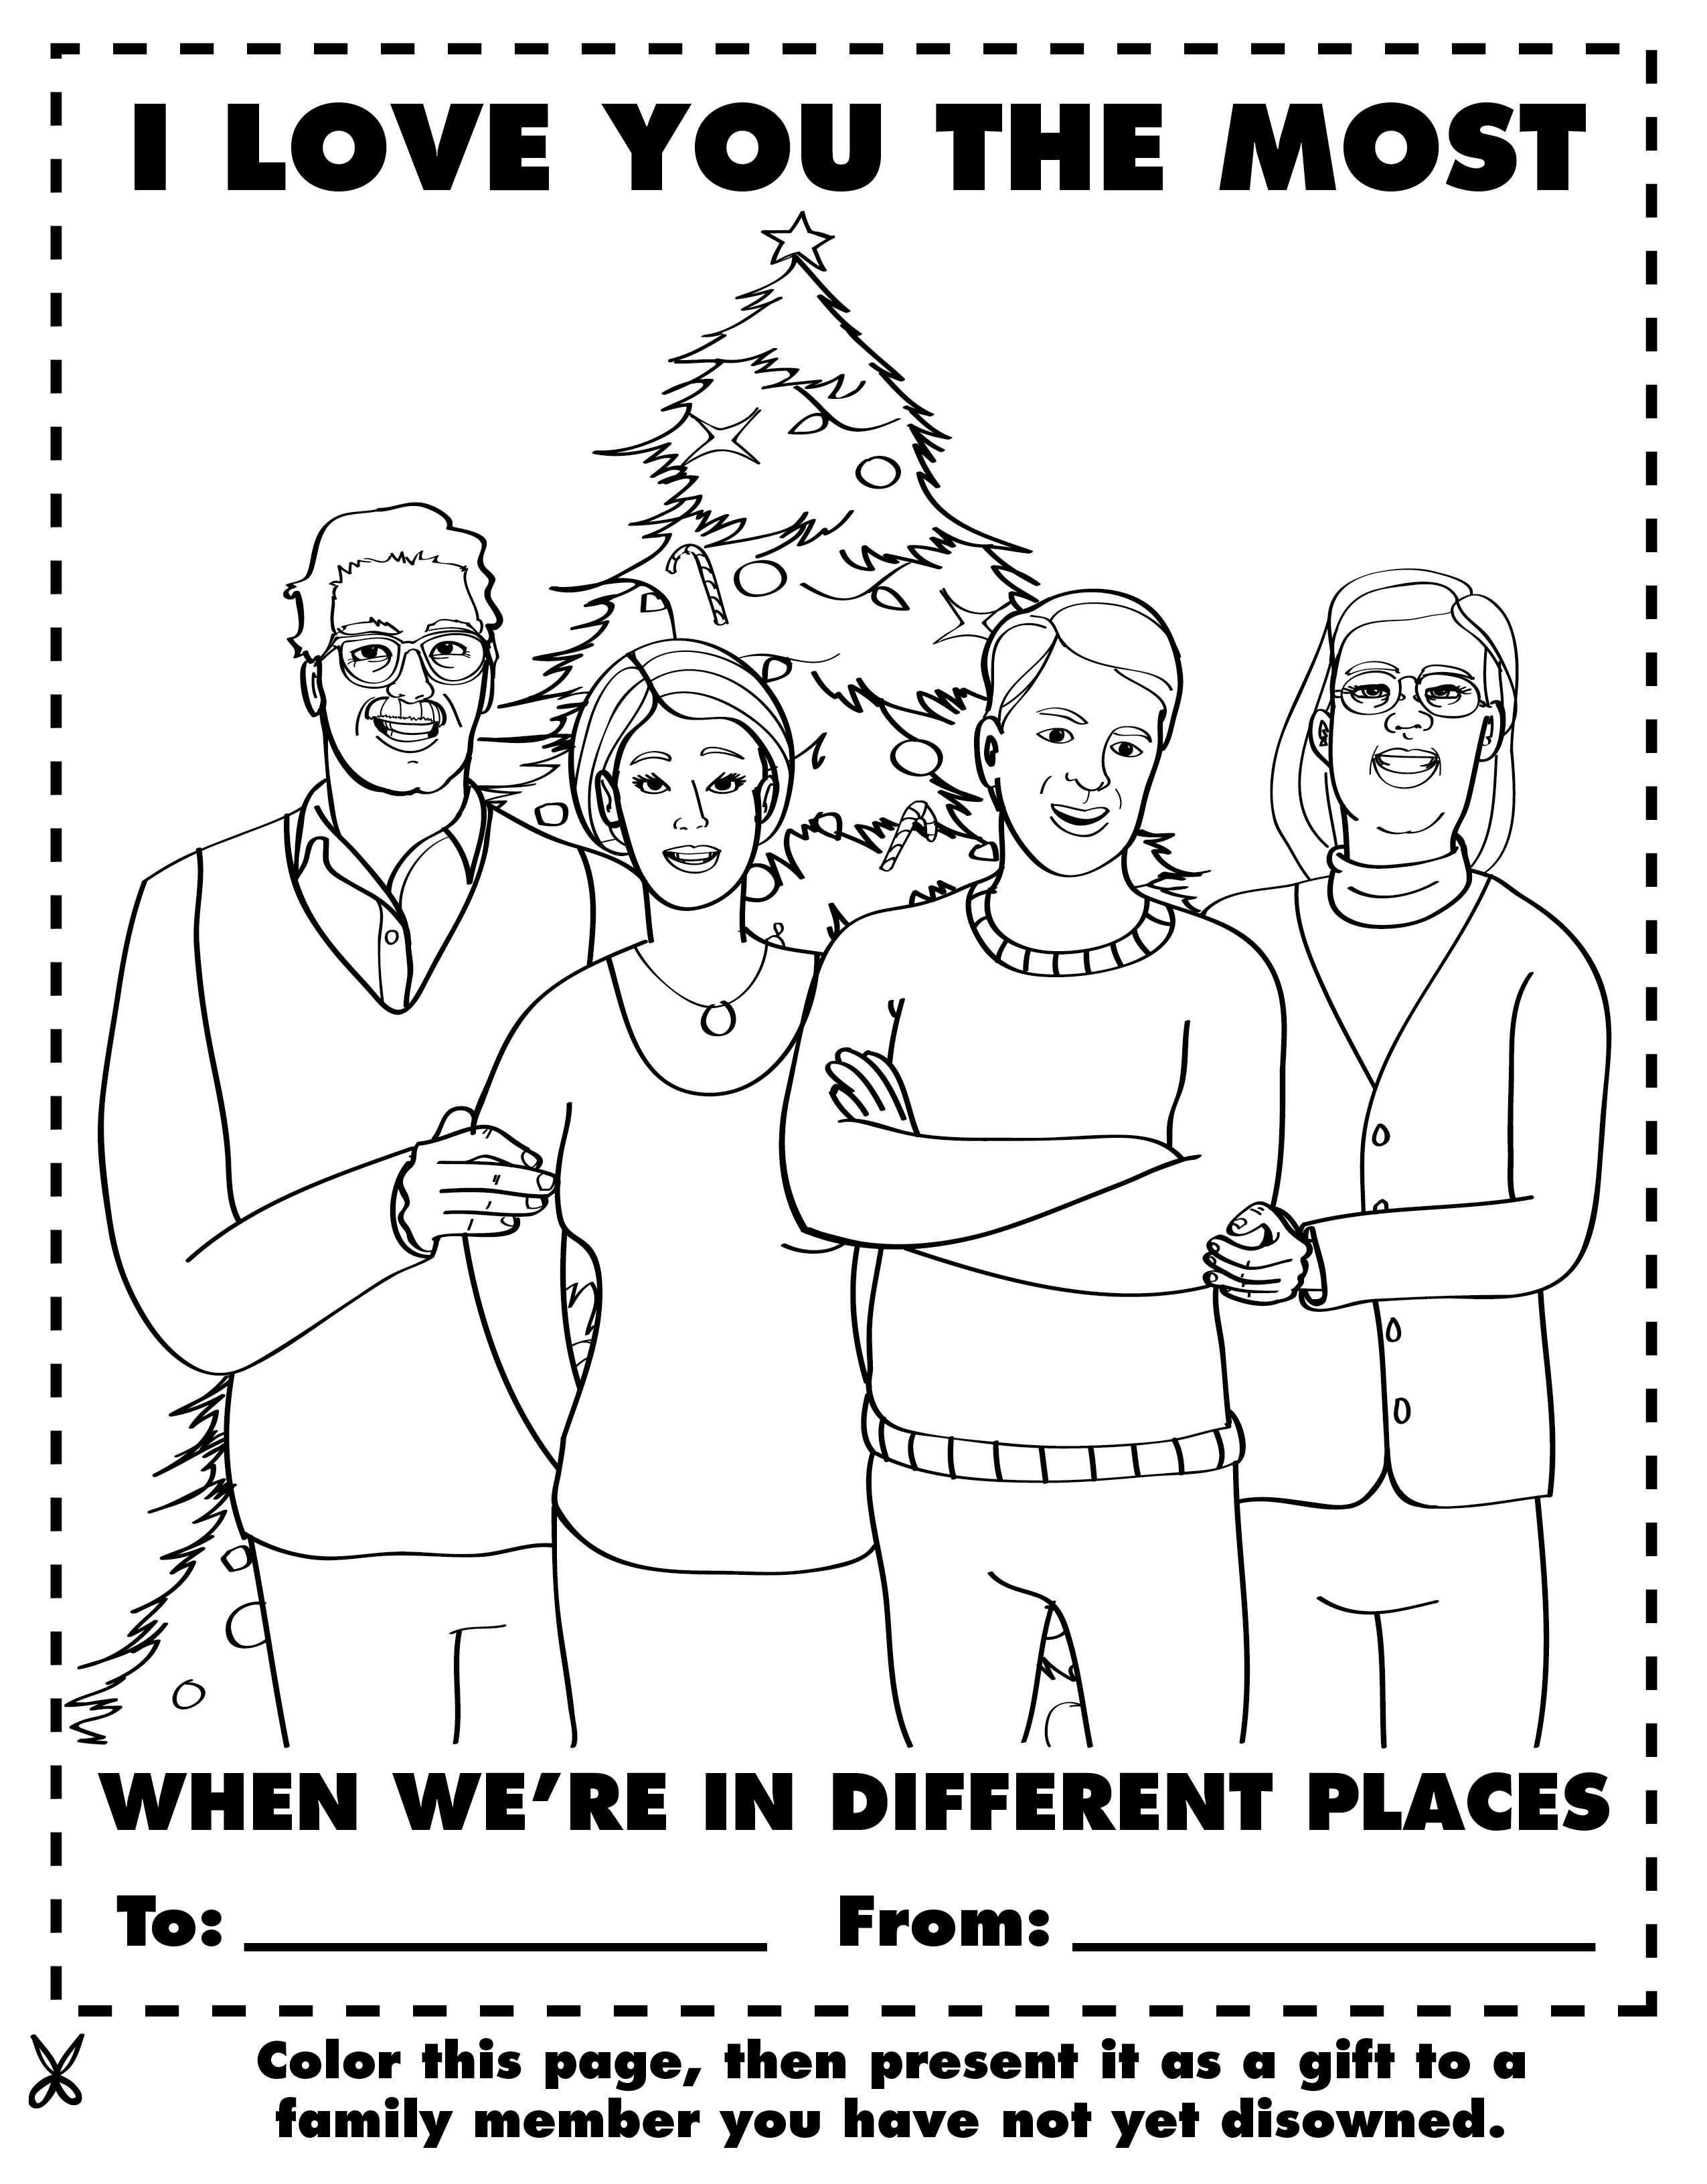 funny meme coloring pages meme coloring pages at getdrawings free download pages funny meme coloring